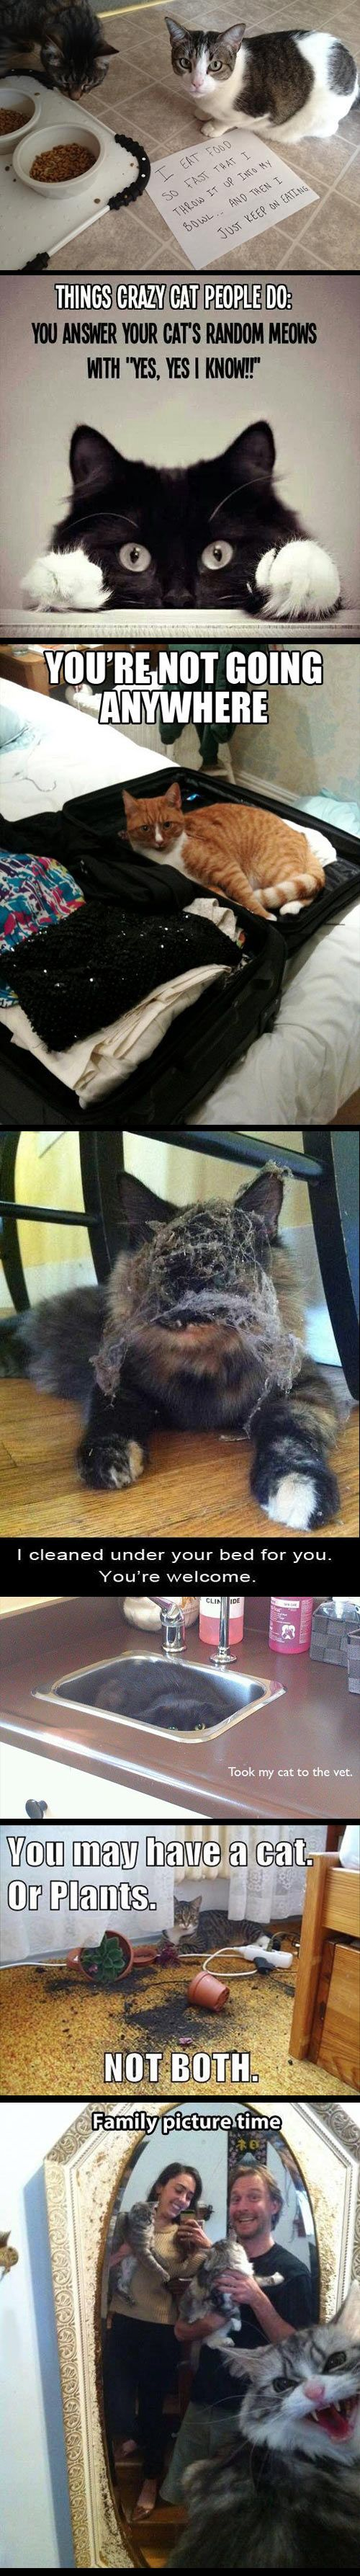 oh cats: Cat People, Crazy Cats, Kitty Cats, Funny Cats, Cat Owners, Car Crash, Cat Lady